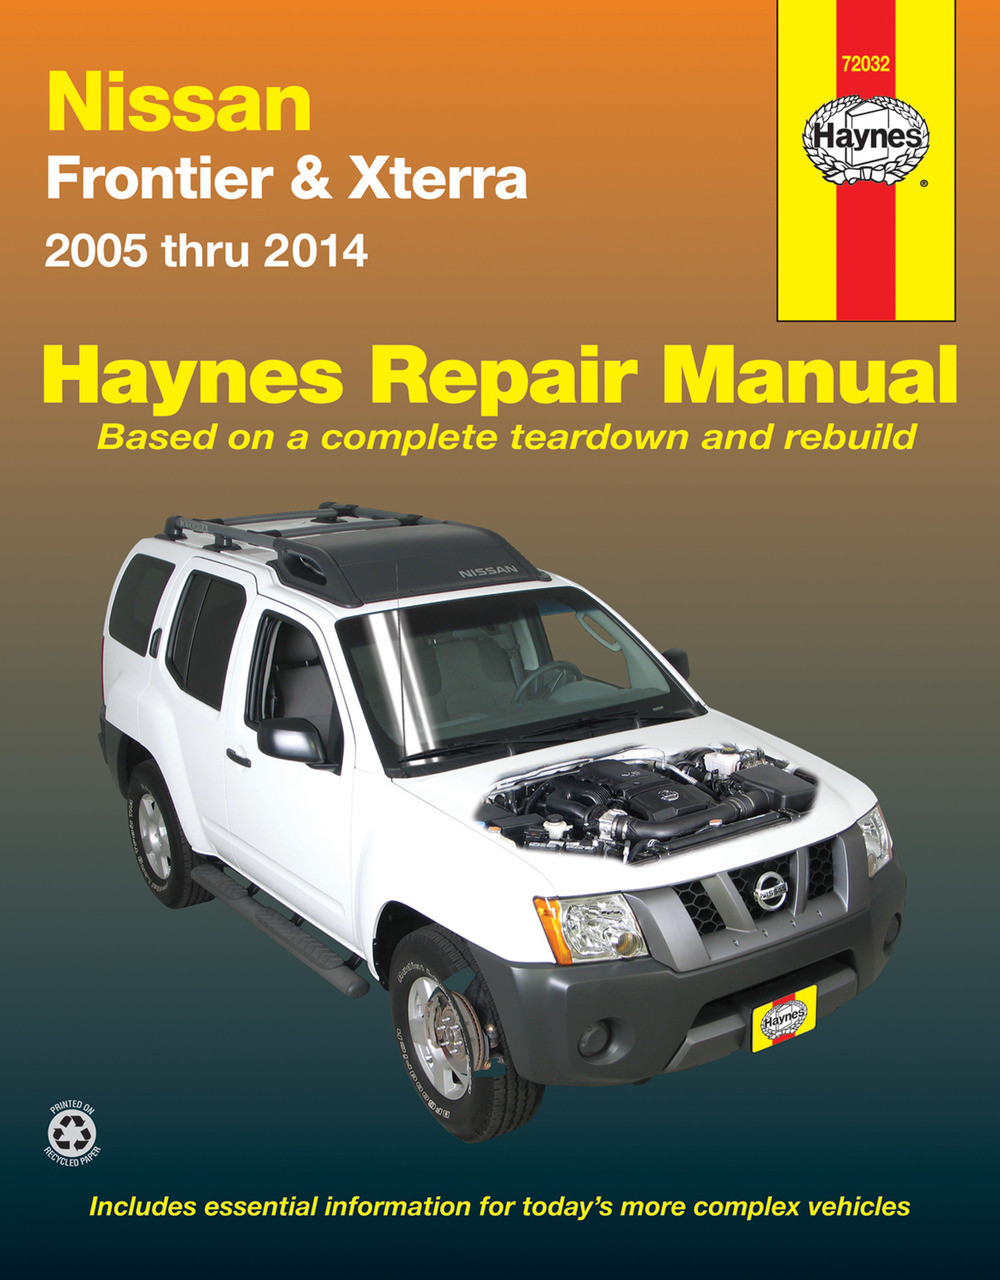 Nissan Frontier & Xterra (Navara D40, Pathfinder R51) 2005-2014 for two &  four-wheel drive Haynes Repair Manual (USA)